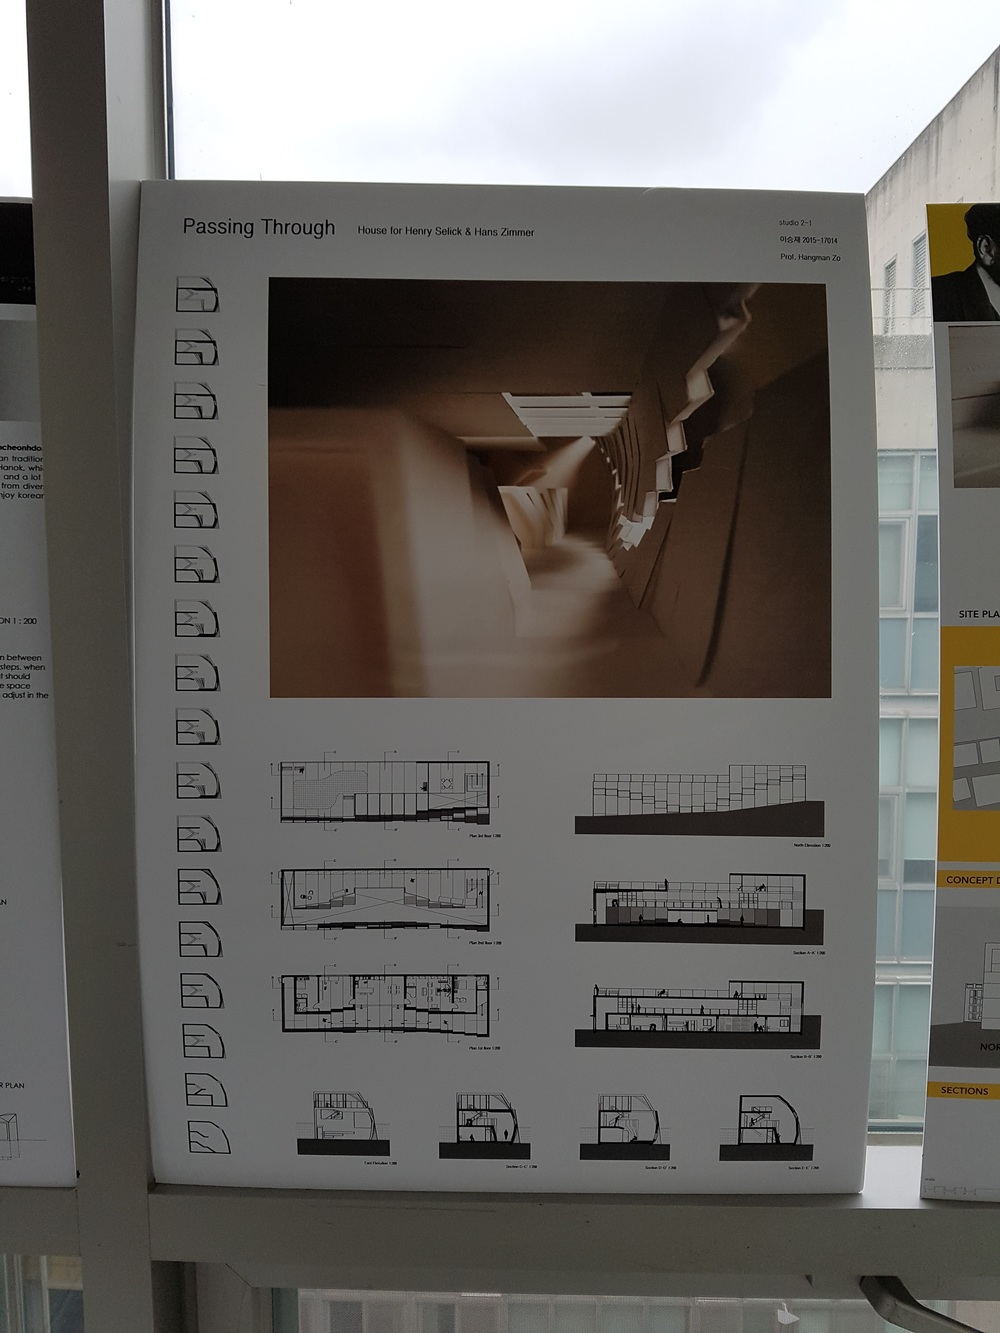 This project was particularly interesting as it shares bit of similarities of what I did for my project. Having multiple section cut views to further explain the detail in changes were very interesting and easy to understand.  이 프로젝은 제가 했던 것과 비슷한 프렌테이션 방식을 보여주고 있어 특히나 흥미로웠습니다. 여러 개의 단면도를 통해 건물의 변화과정이나 등등을 이해하기 쉽고 많은 도움이 된 것 같습니다!